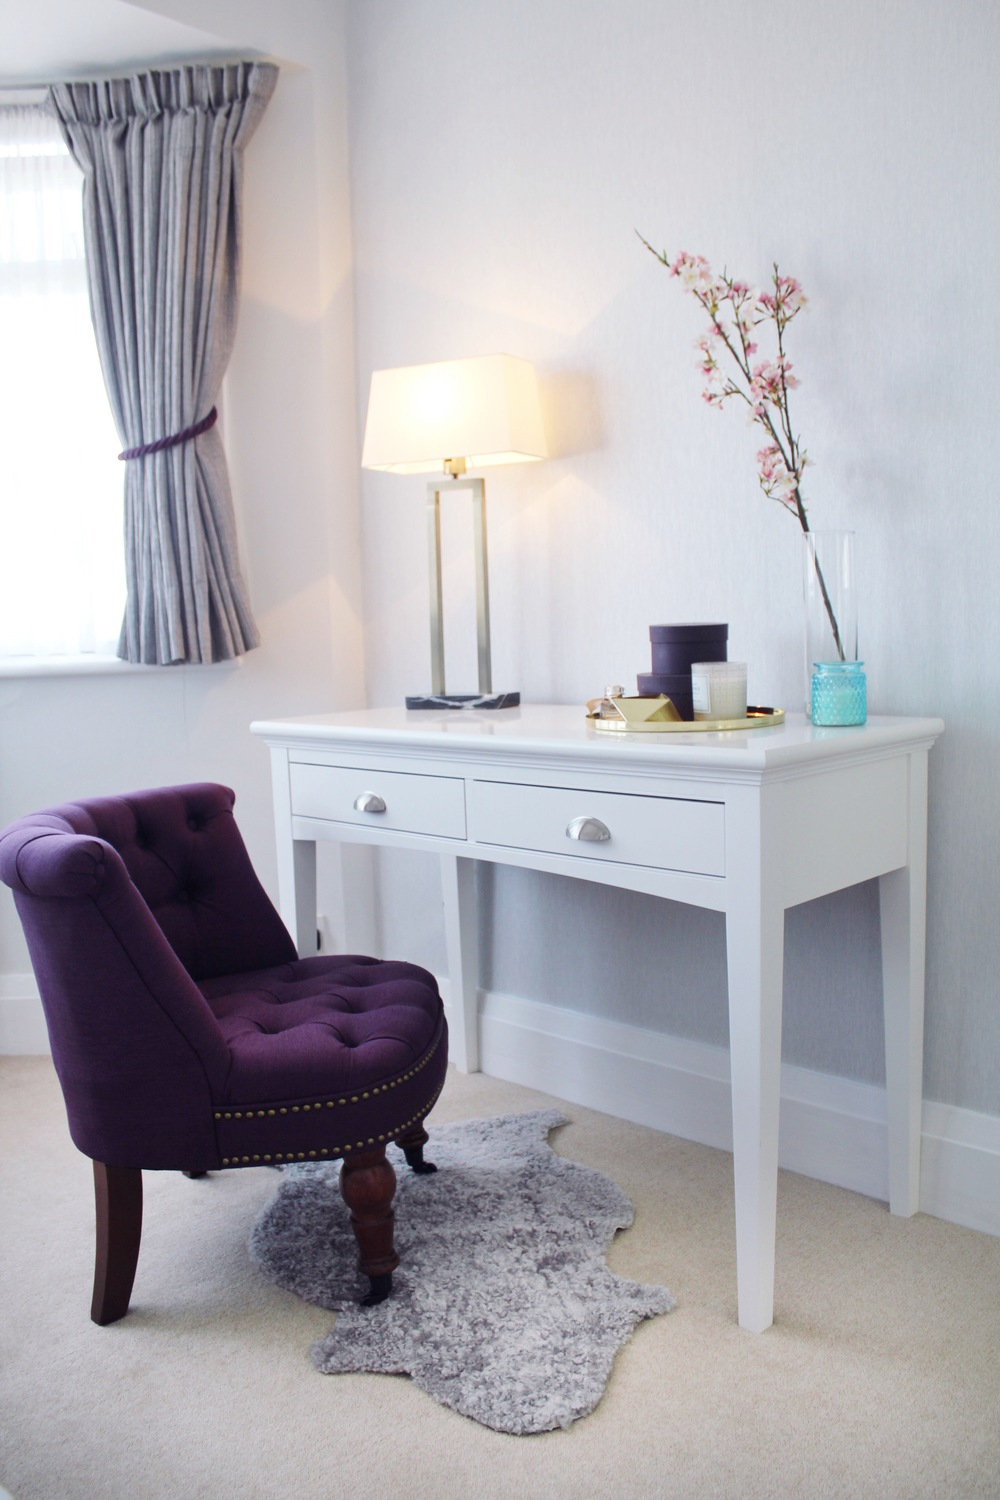 PURPLE AND GREY BEDROOM MAKEOVER FOR MY FIRST INTERIOR DESIGN CLIENT